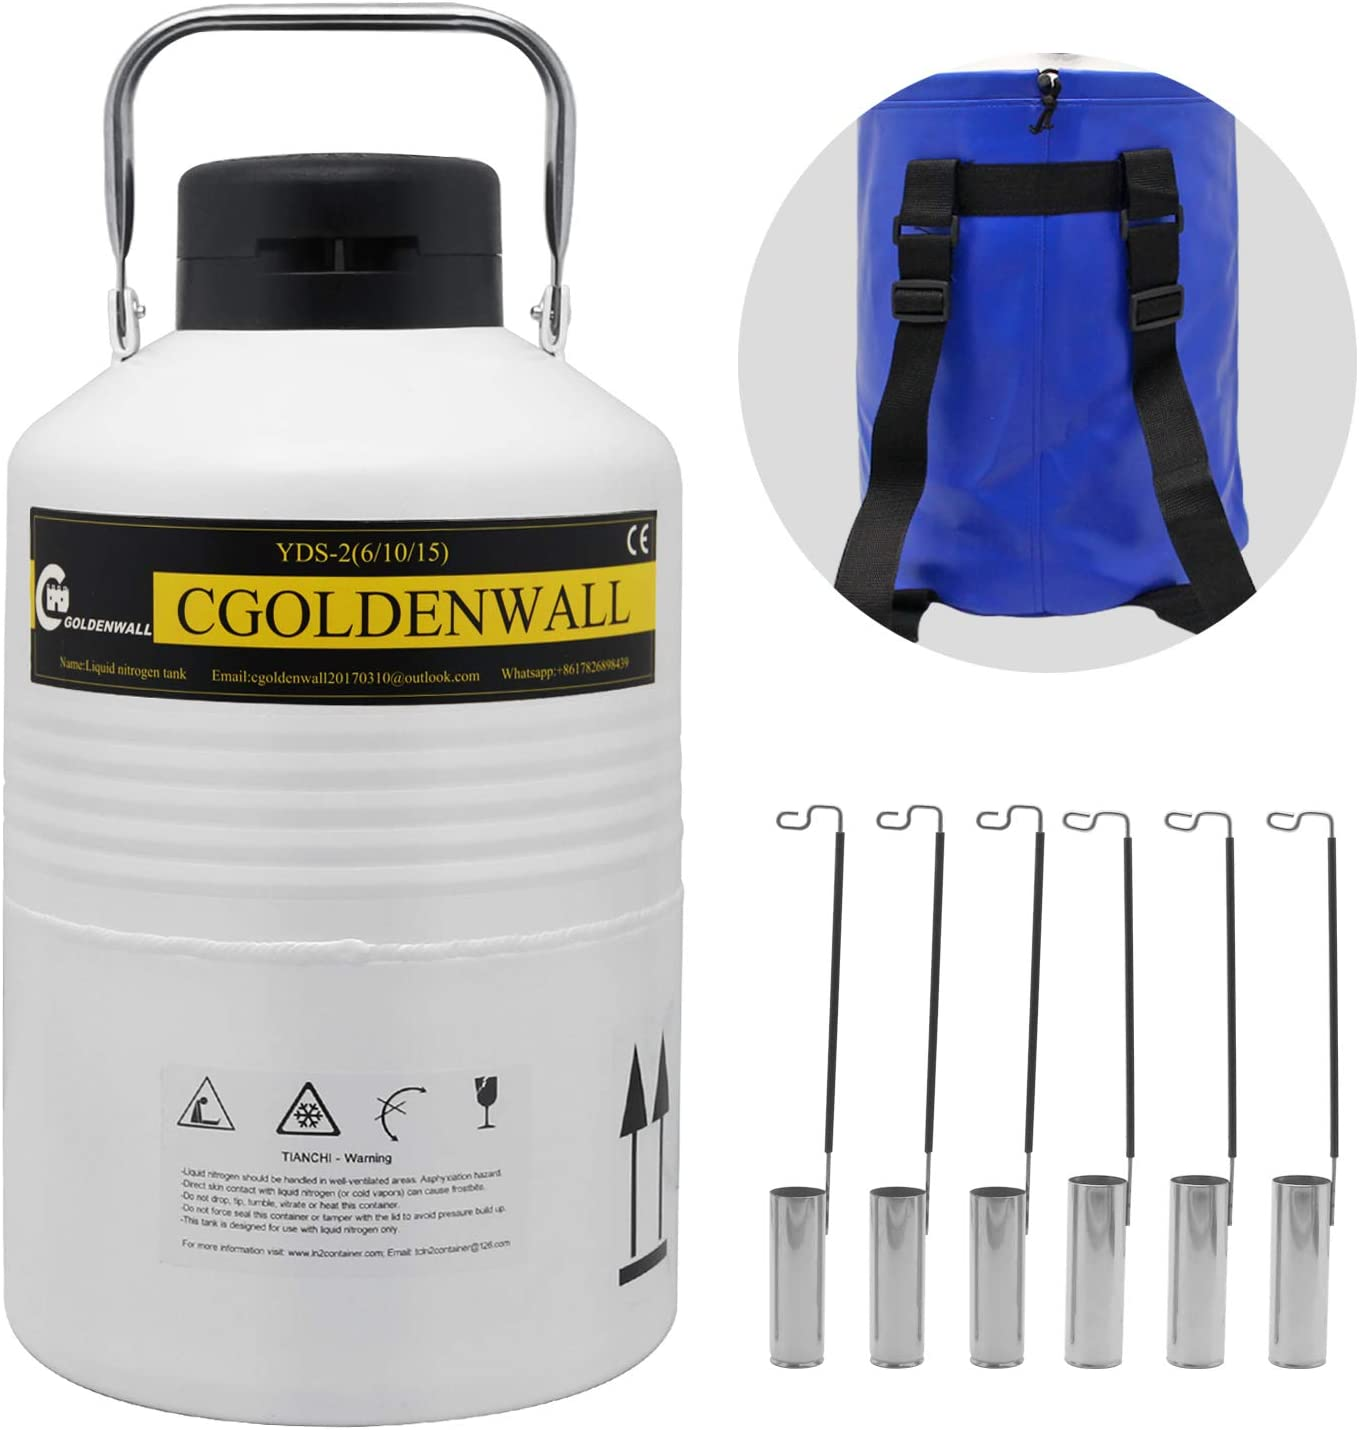 CGOLDENWALL 6L Cryogenic Container Liquid Nitrogen LN2 Tank Dewar Liquid nitrogen dewar Aluminum Alloy with 6 Canisters and Carry Bag